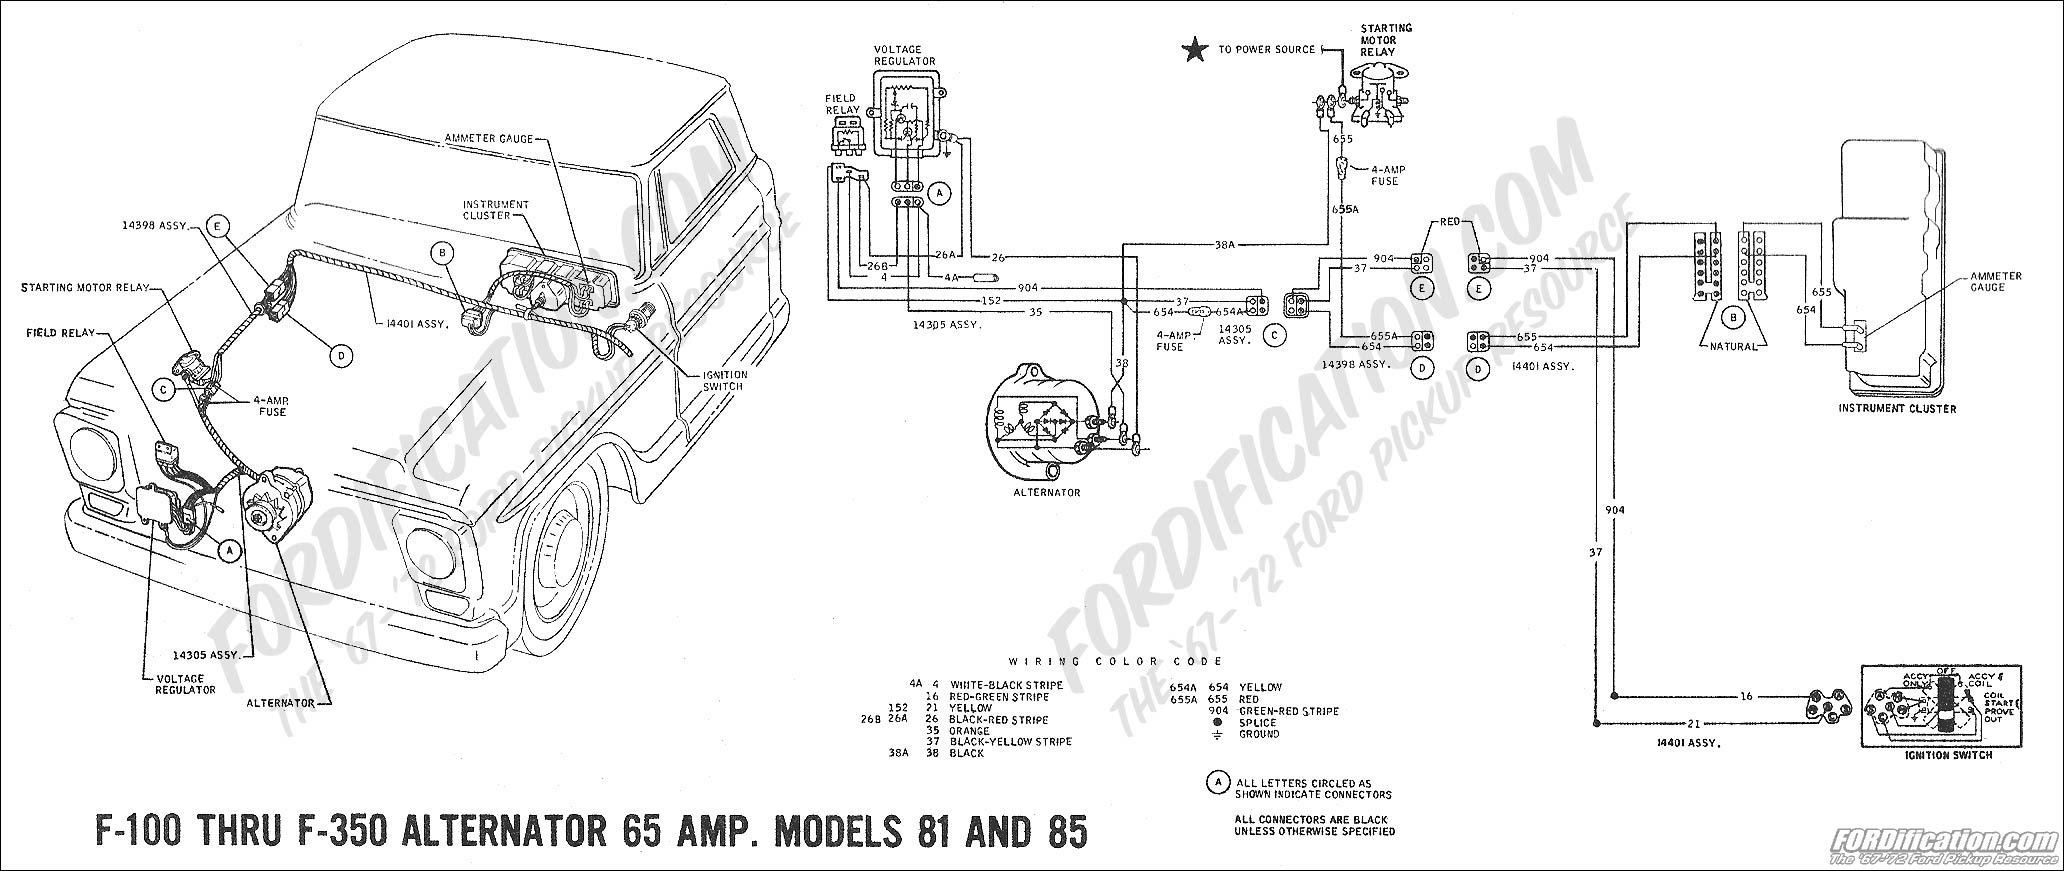 77 Ford Alternator Wiring - Wiring Diagram Networks